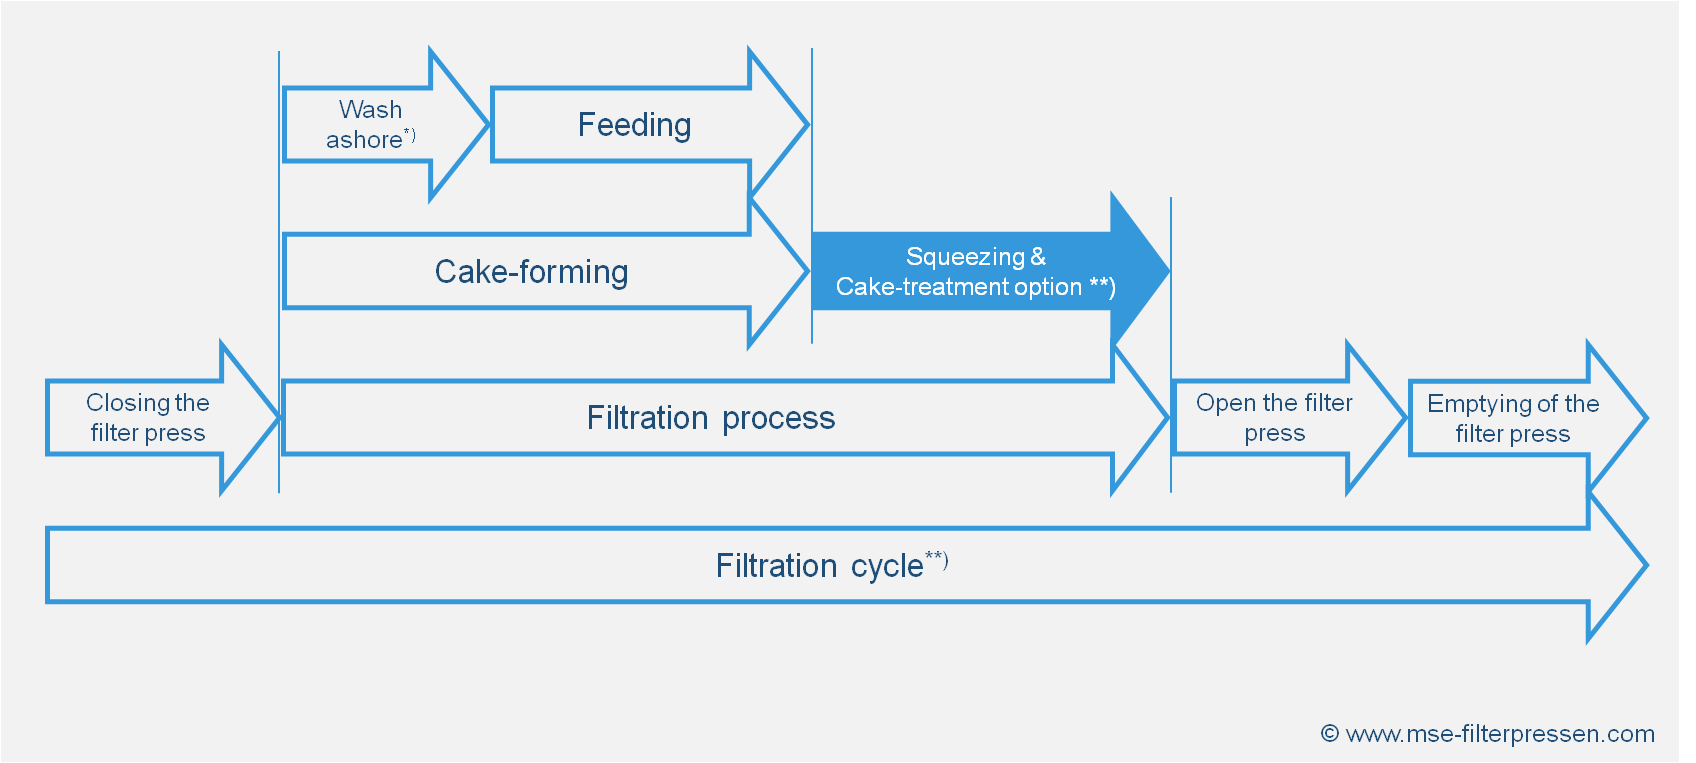 Filtration process of a membrane filter press